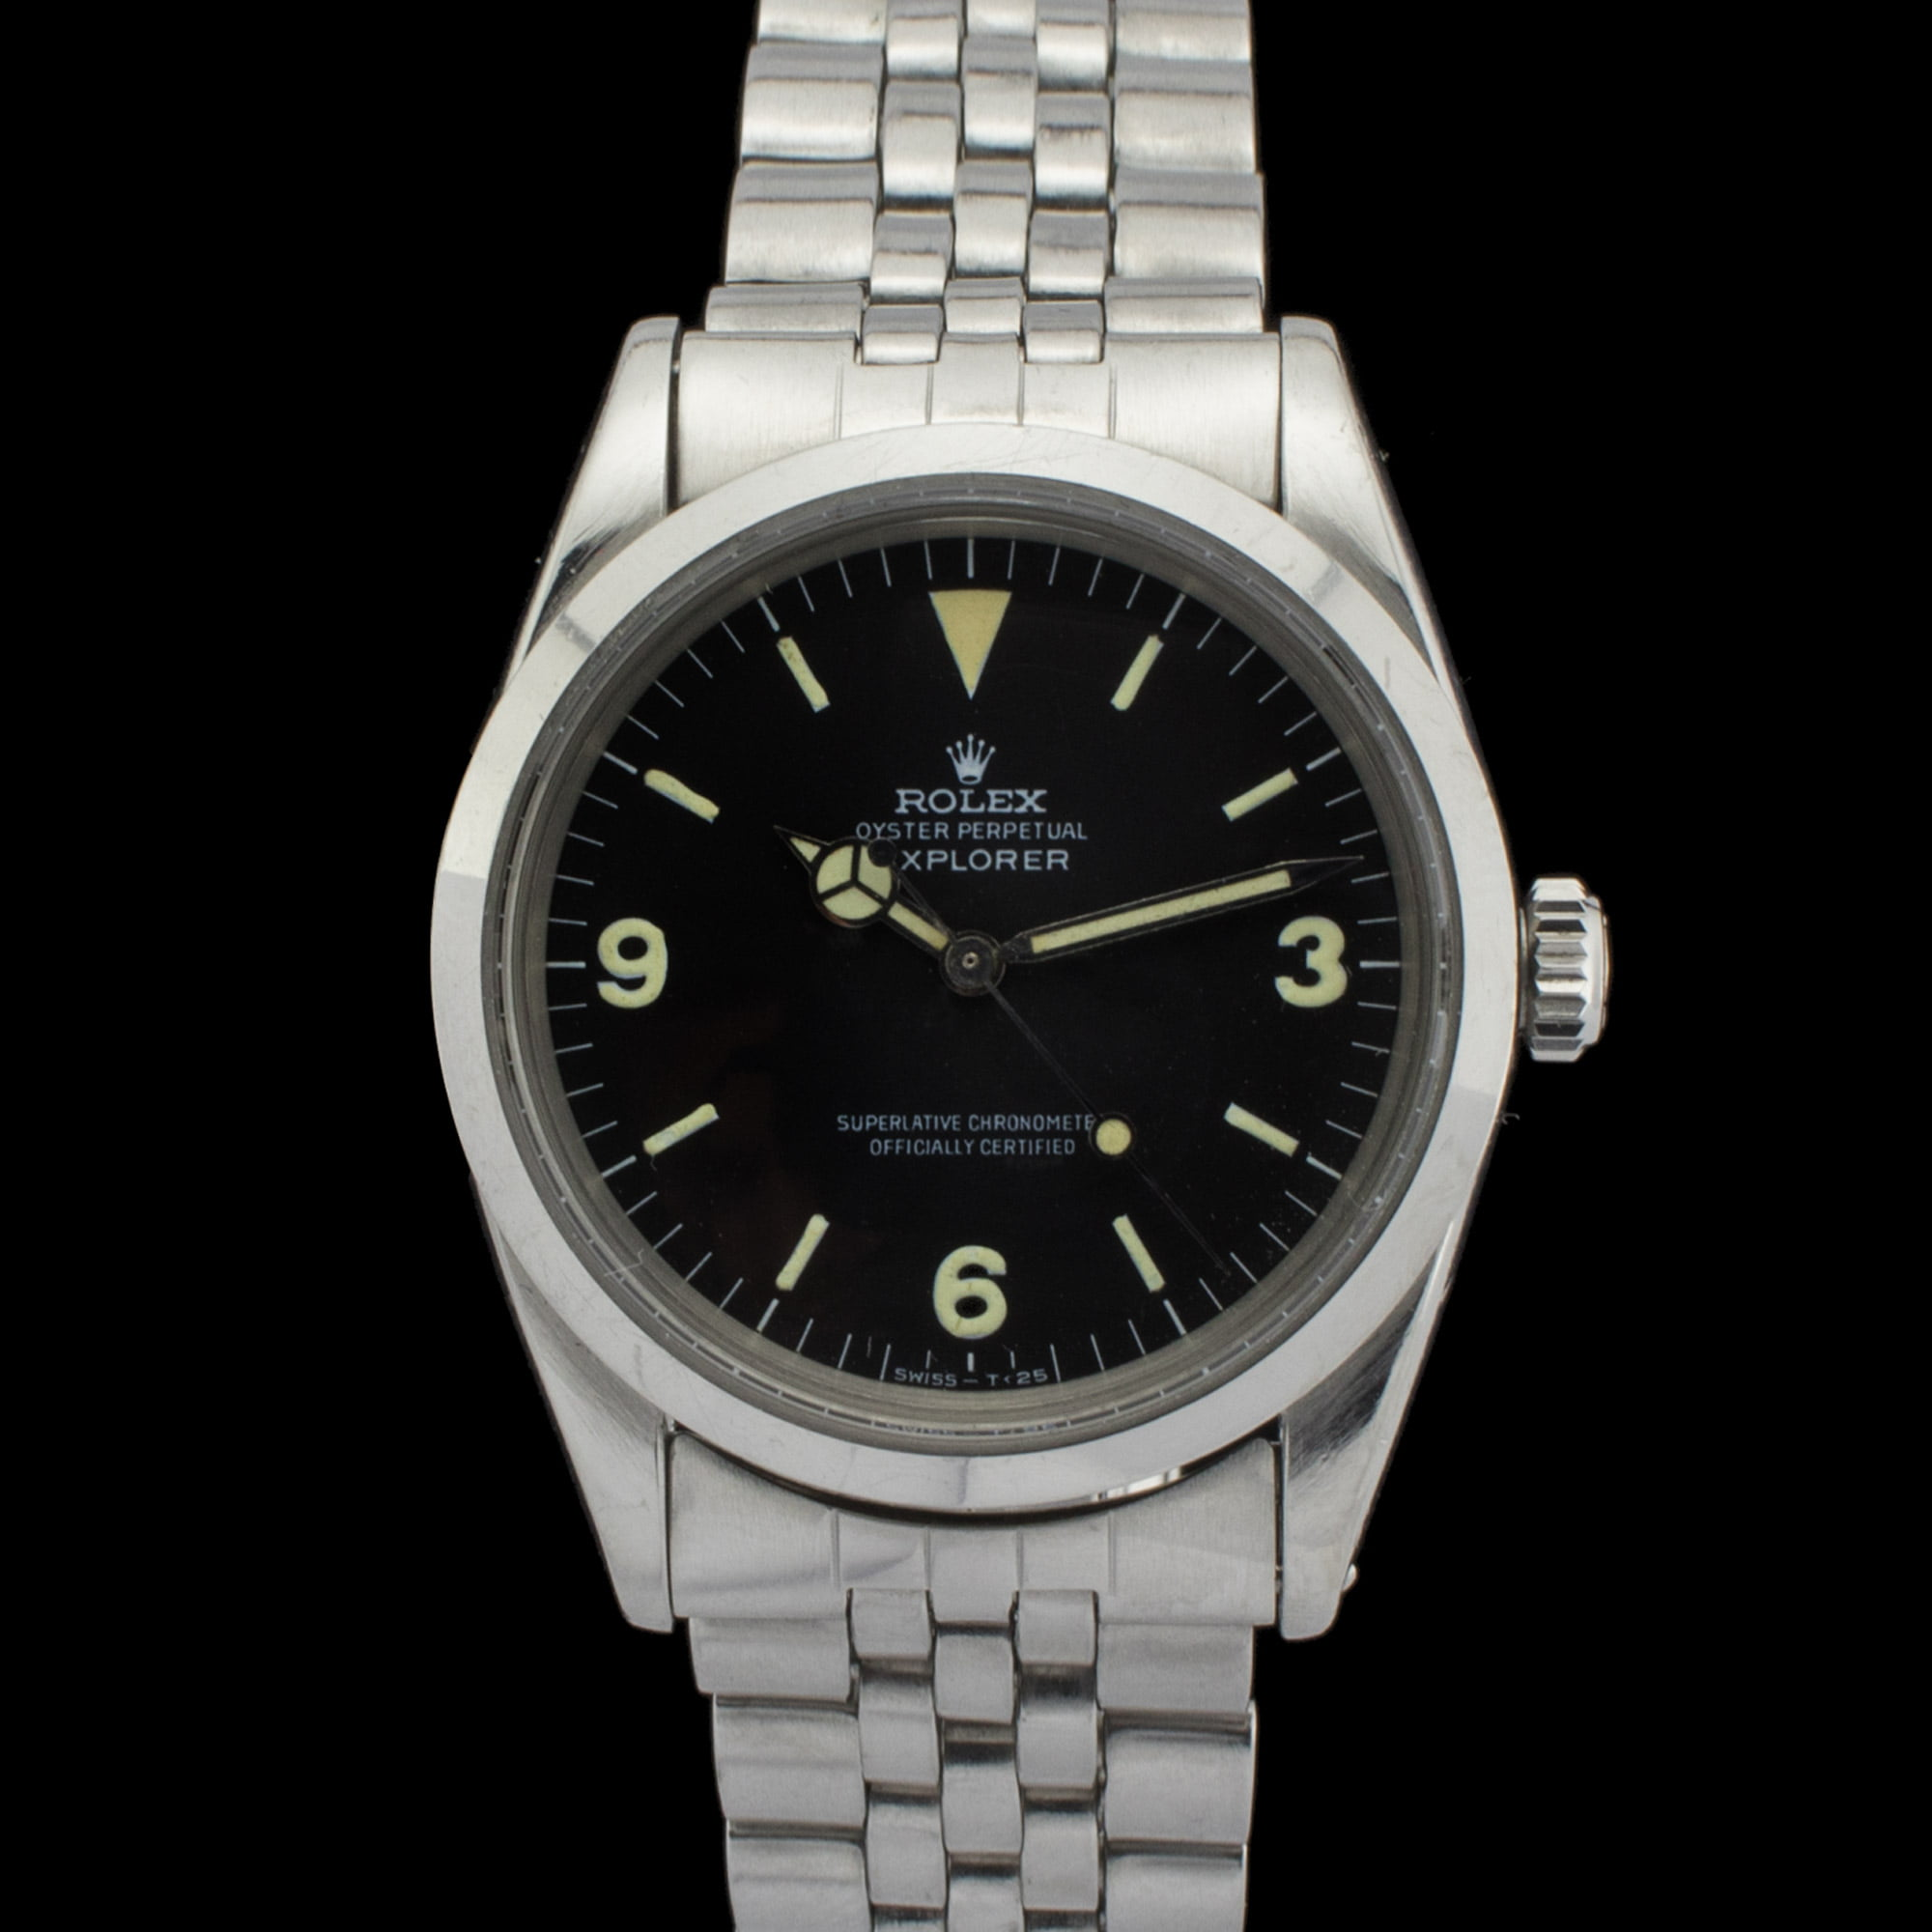 gmt tropical gilt web your watch gallery dial and gil explorer watches mondani master sell ref